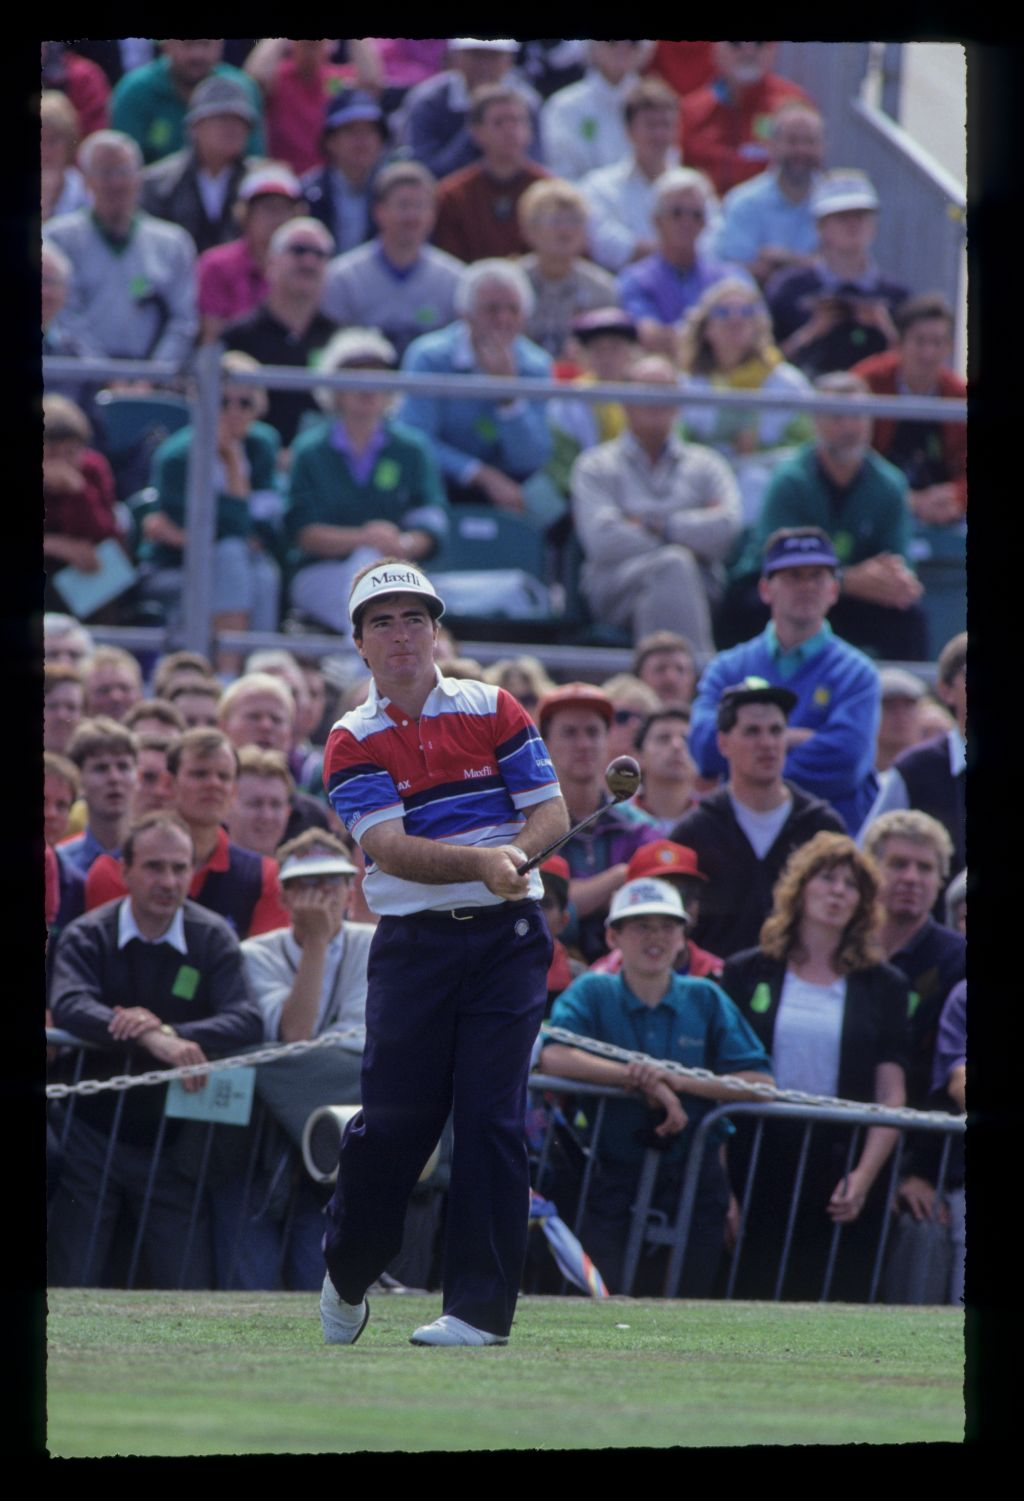 Craig Parry watching closely from the tee on his way to eighth place during the 1991 Open Championship